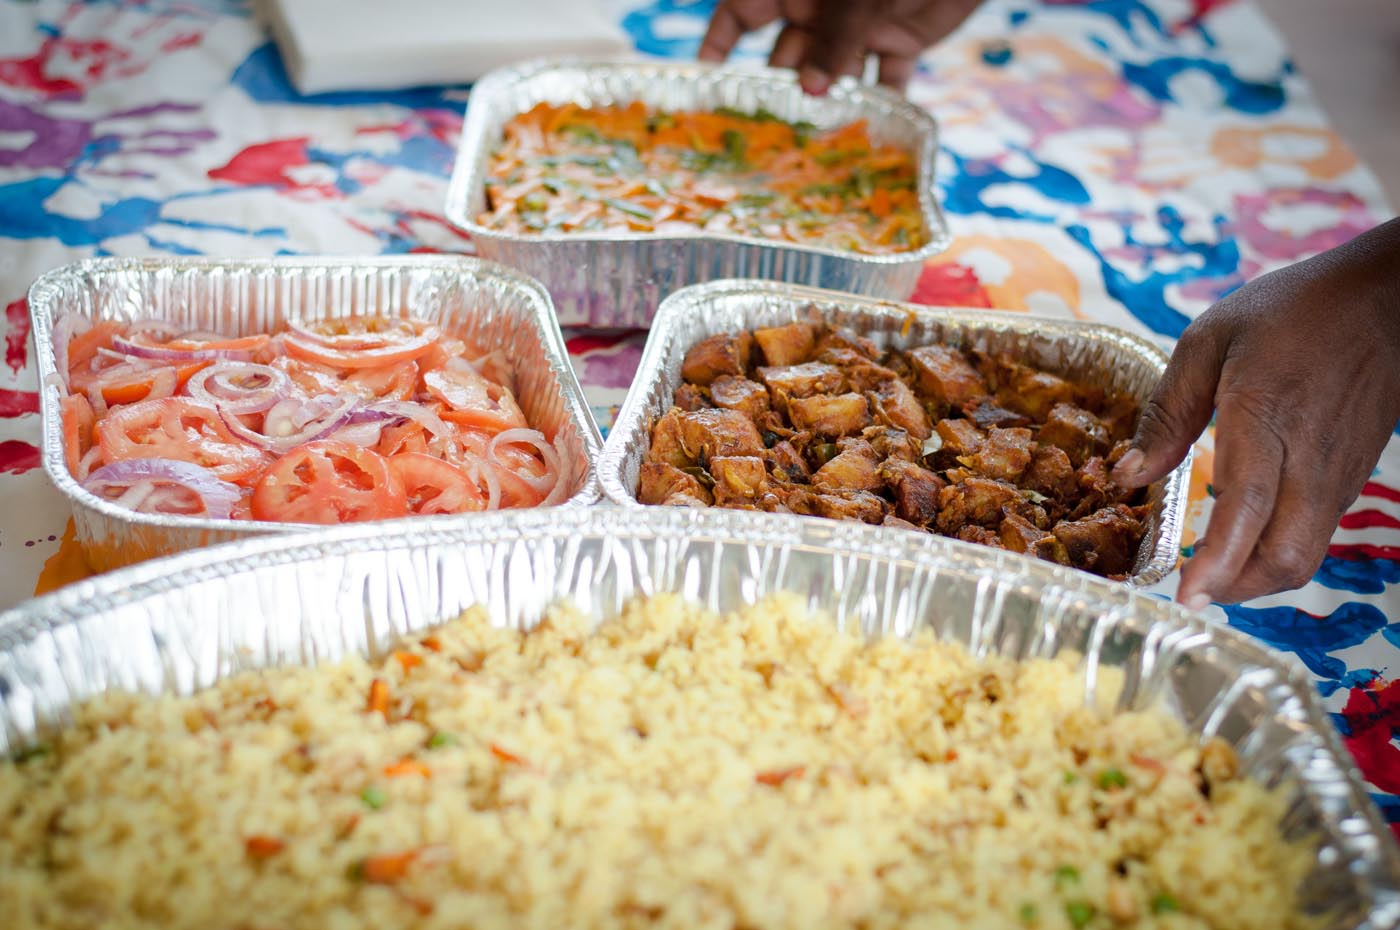 Photo showing four aluminium dishes containing various dishes including rice, tomatoes, meat and vegetables - click to view larger image